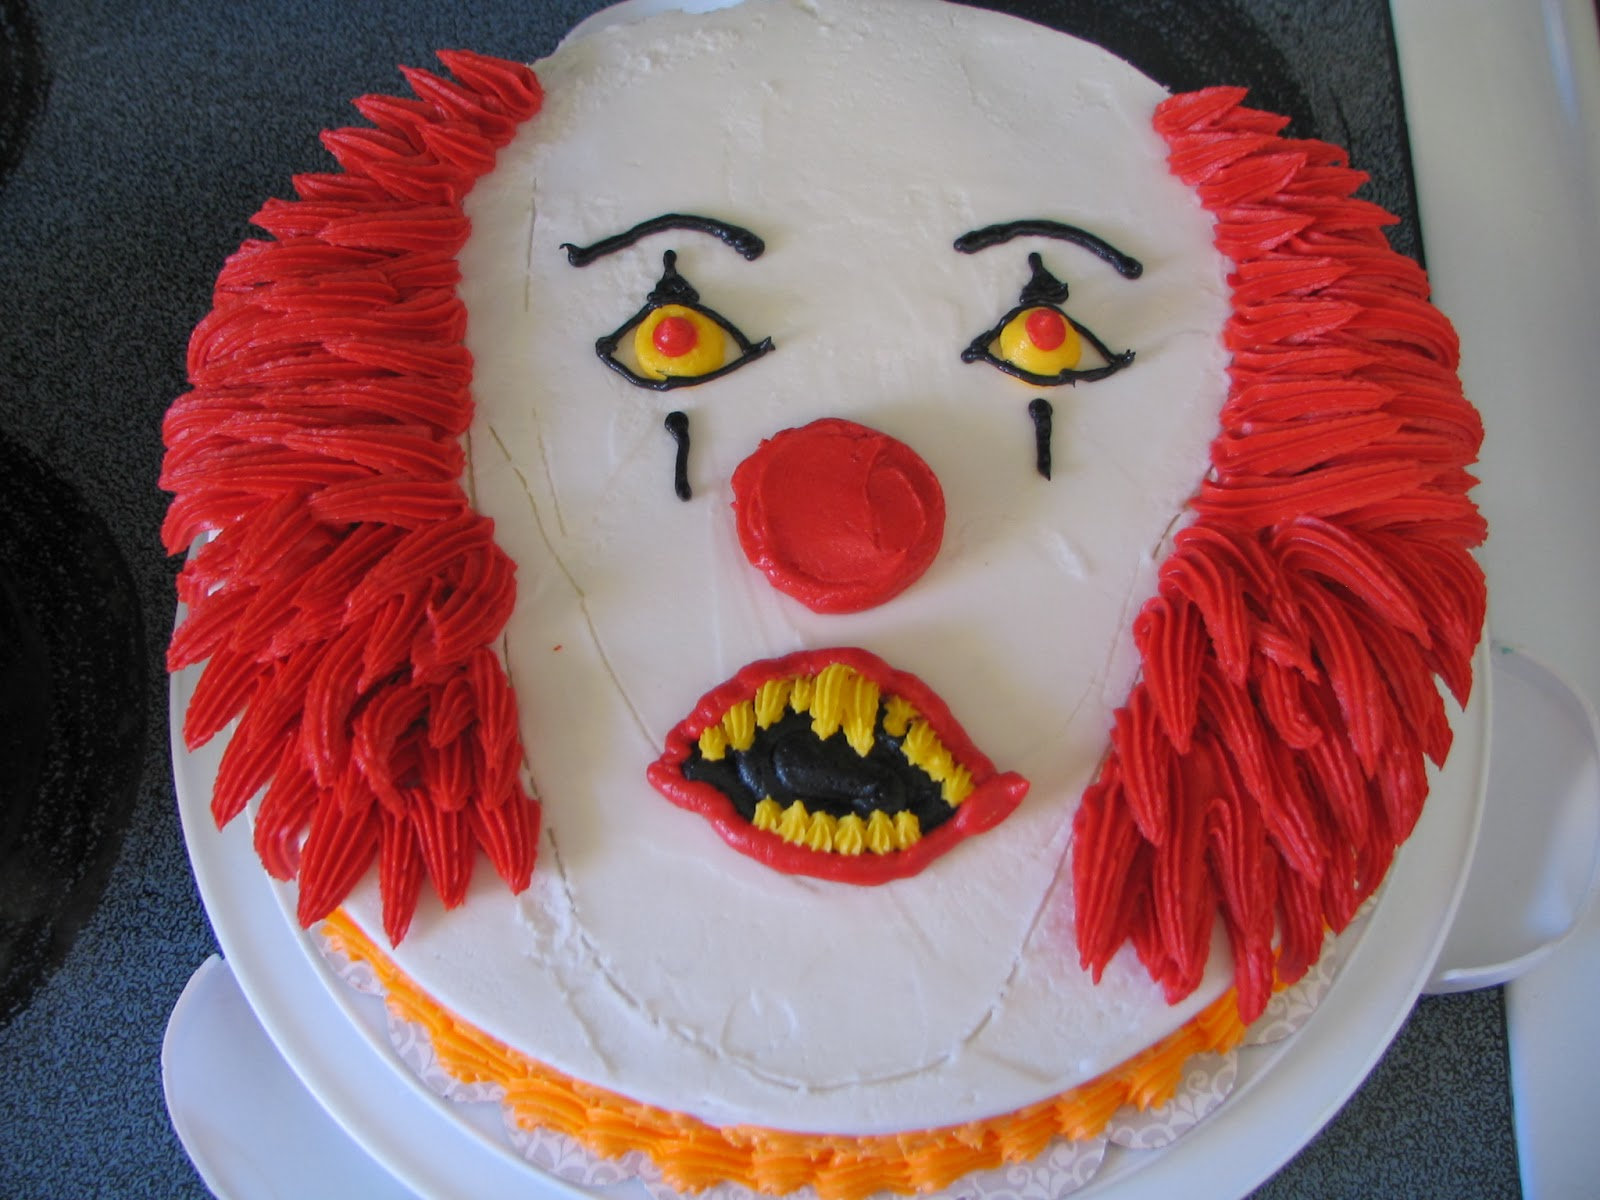 Piped Dreams Pennywise The Clown Scary Version